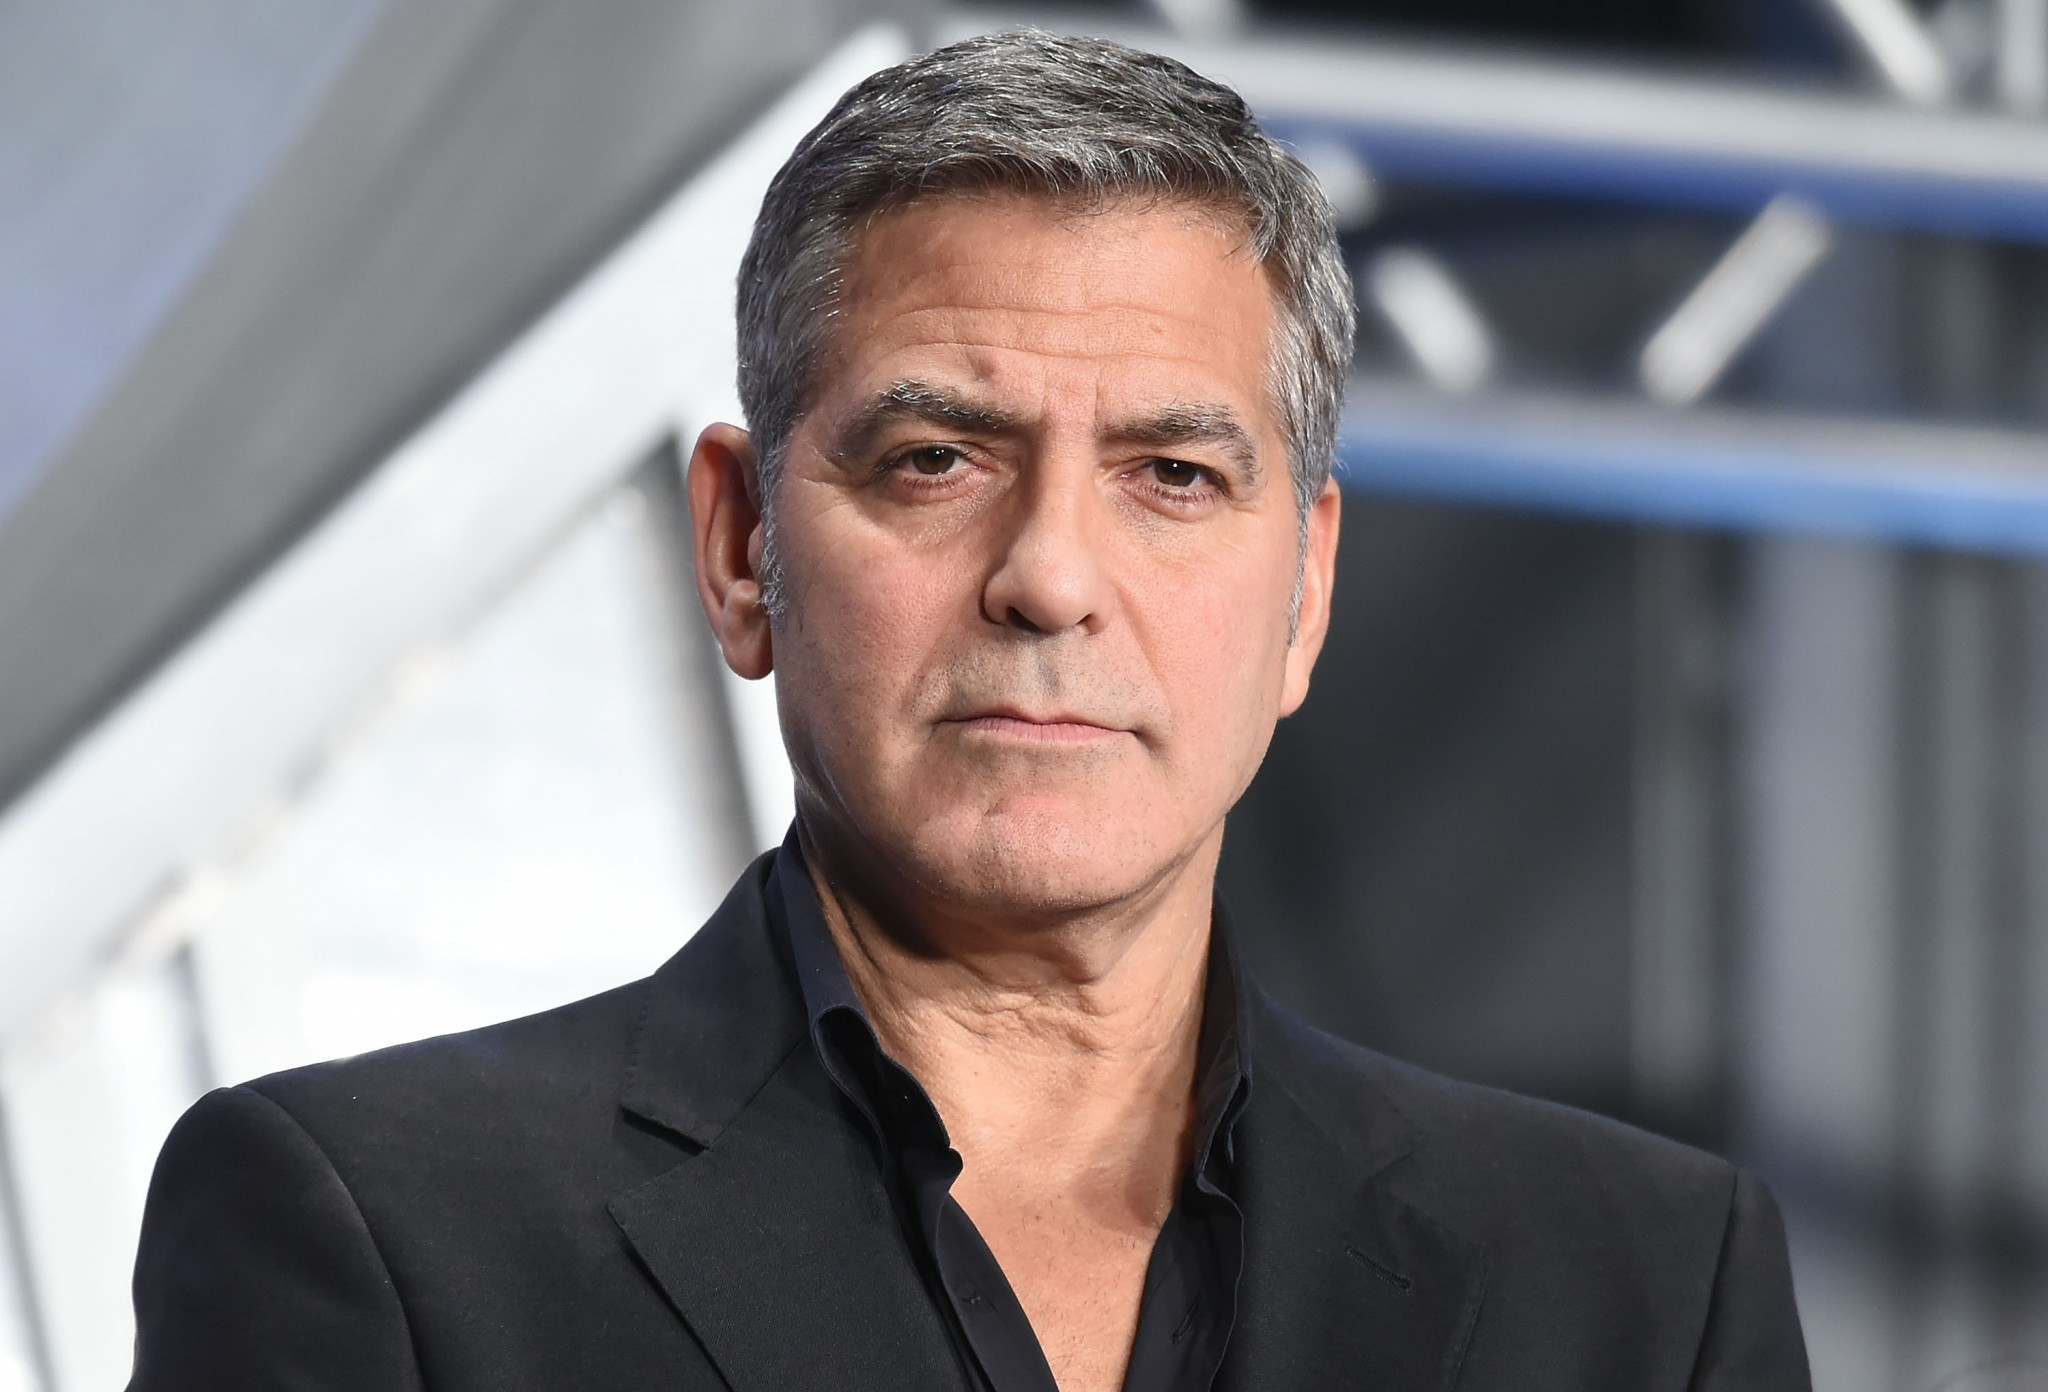 https://loaded.co.uk/wp-content/uploads/2015/11/george-clooney-exclusive-interview-wife-amal-loaded.jpg